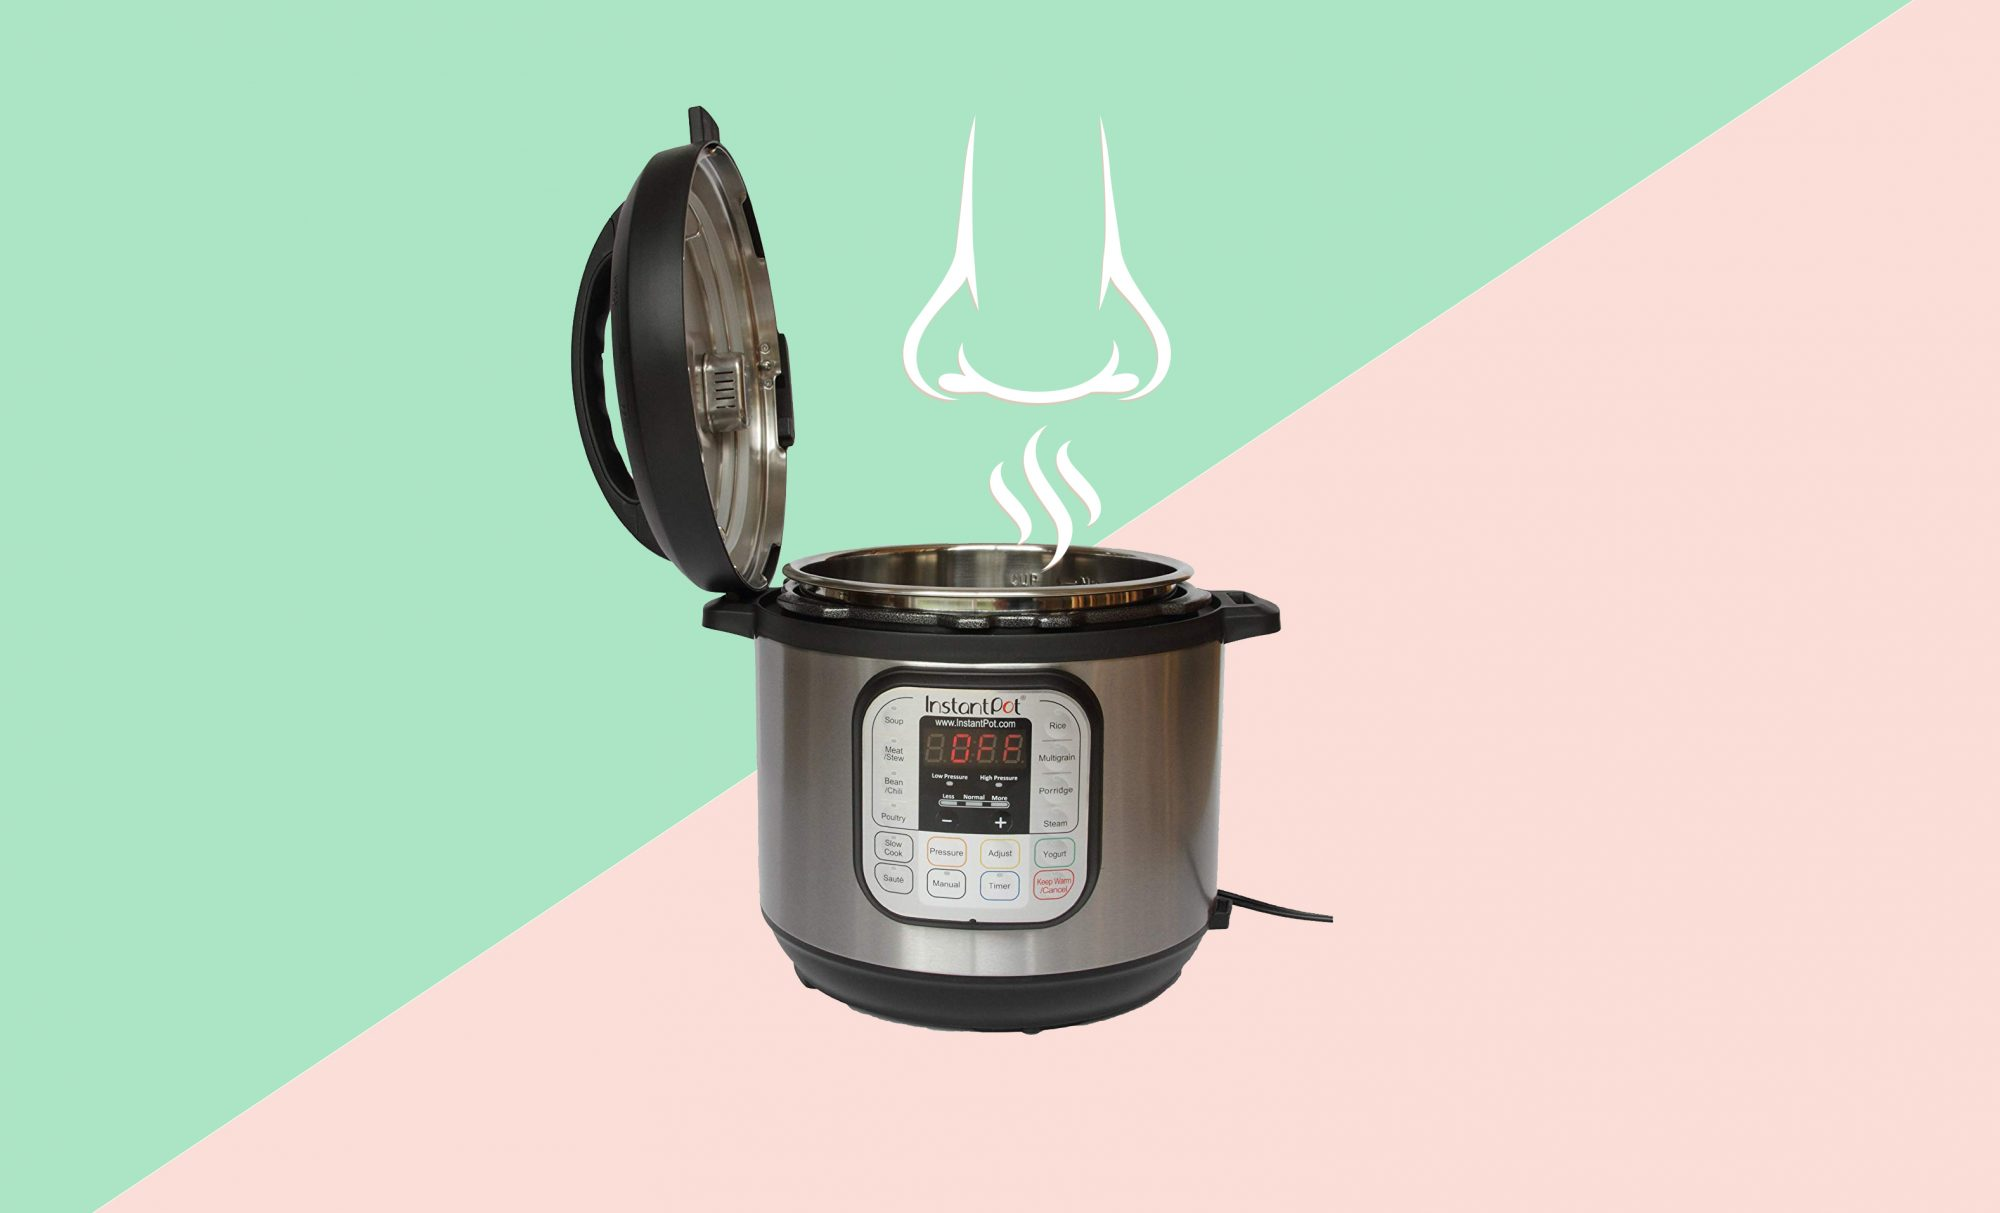 How to Clean an Instant Pot: The 2-Minute Fix for That Funky Smell